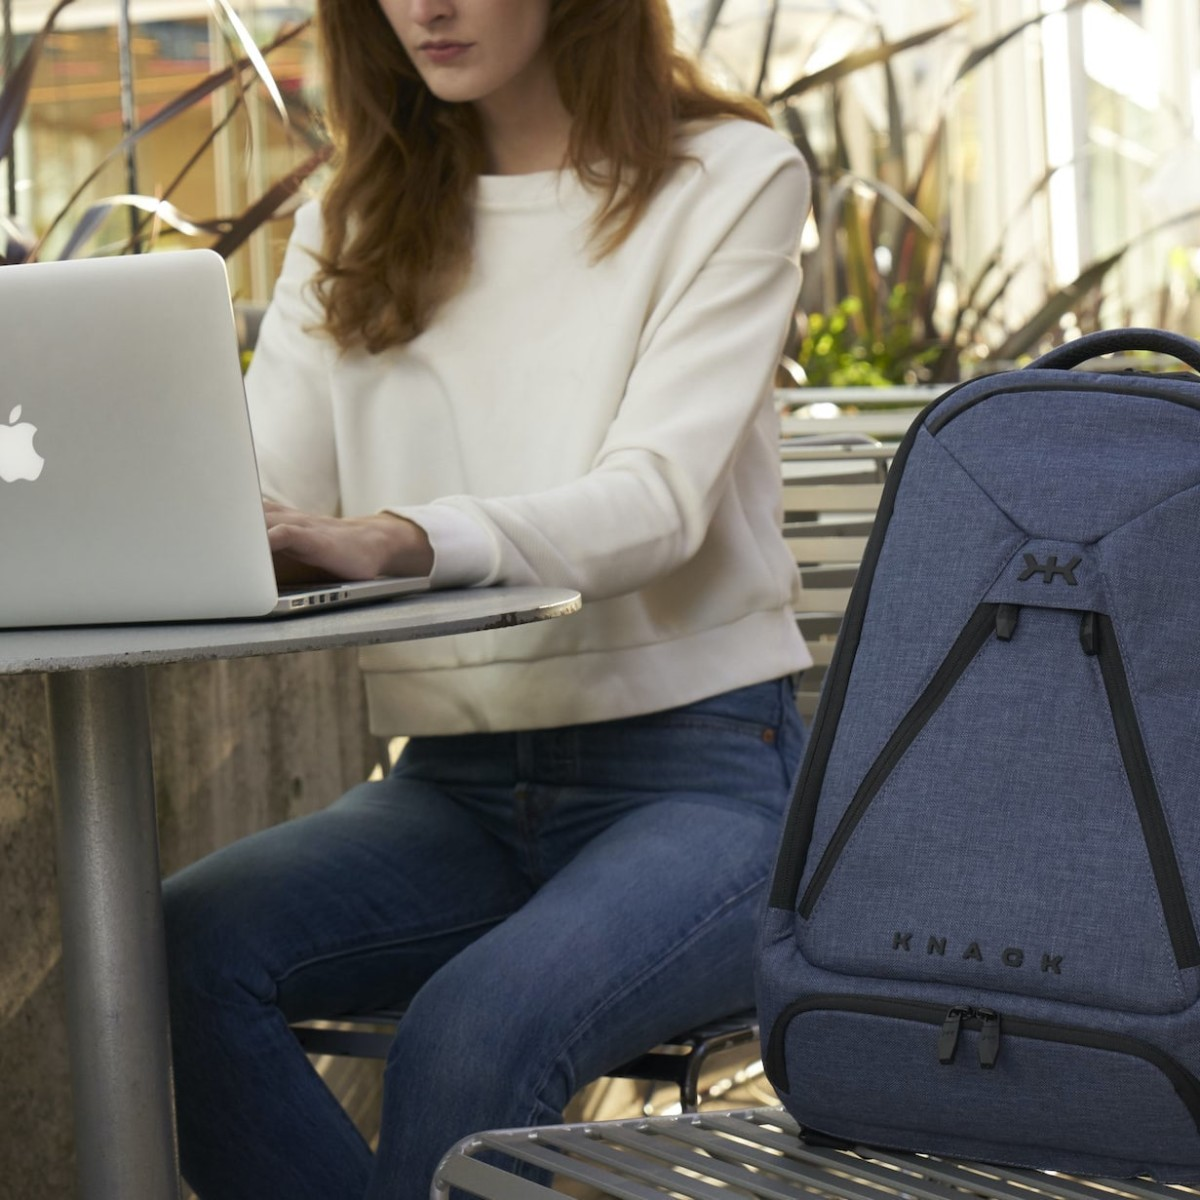 Knack Bags All-Purpose Backpacks work for everyday, travel, and professional situations